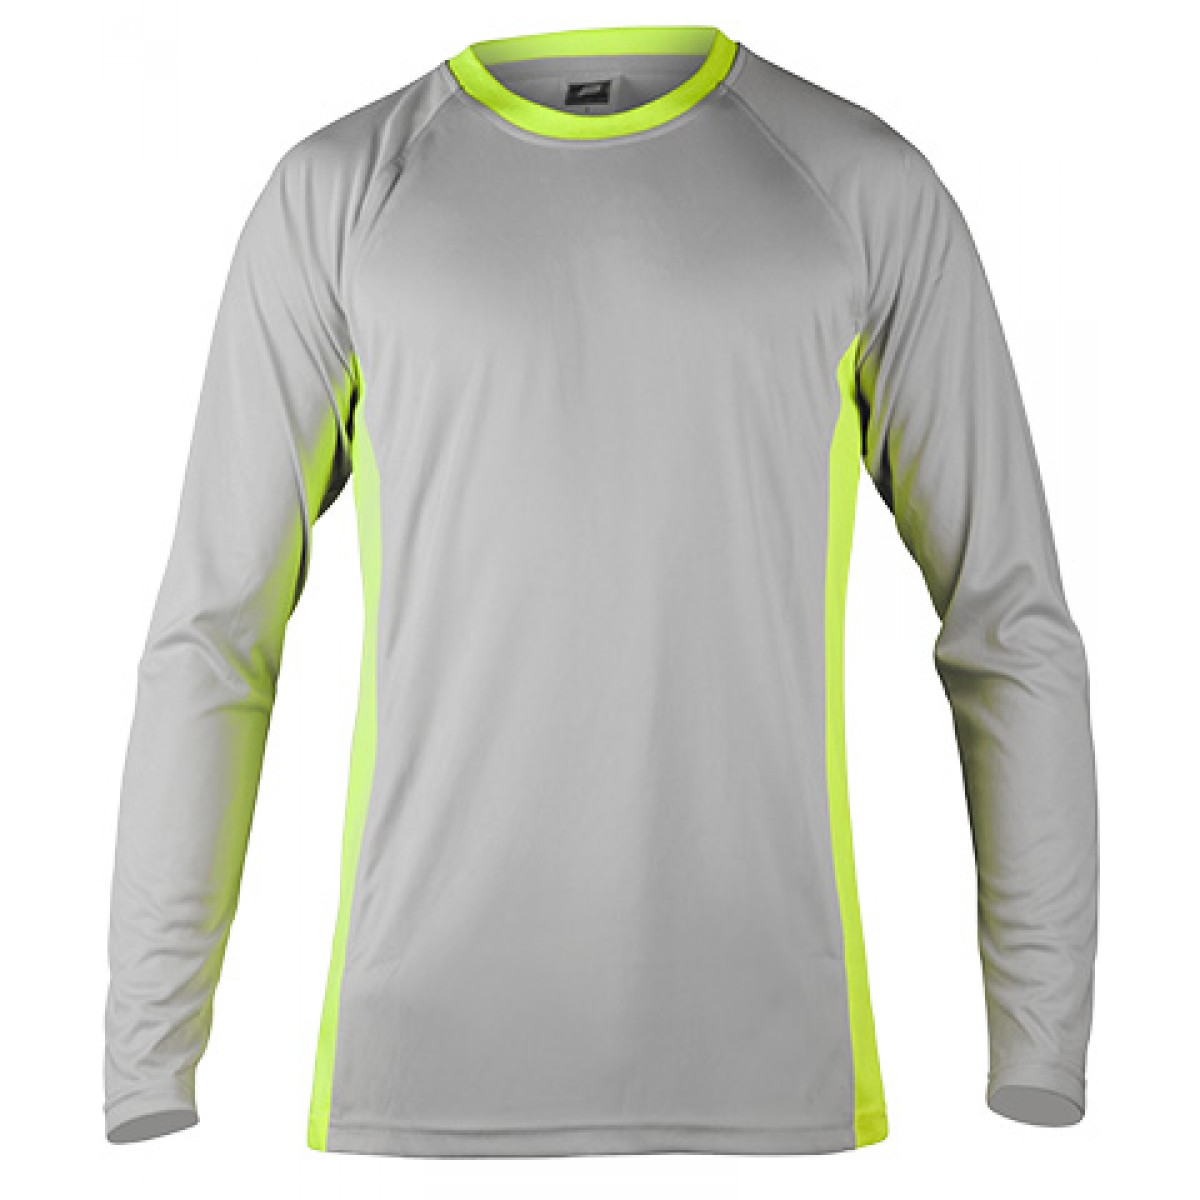 Long Sleeves Performance With Side Insert-Gray/Green-2XL